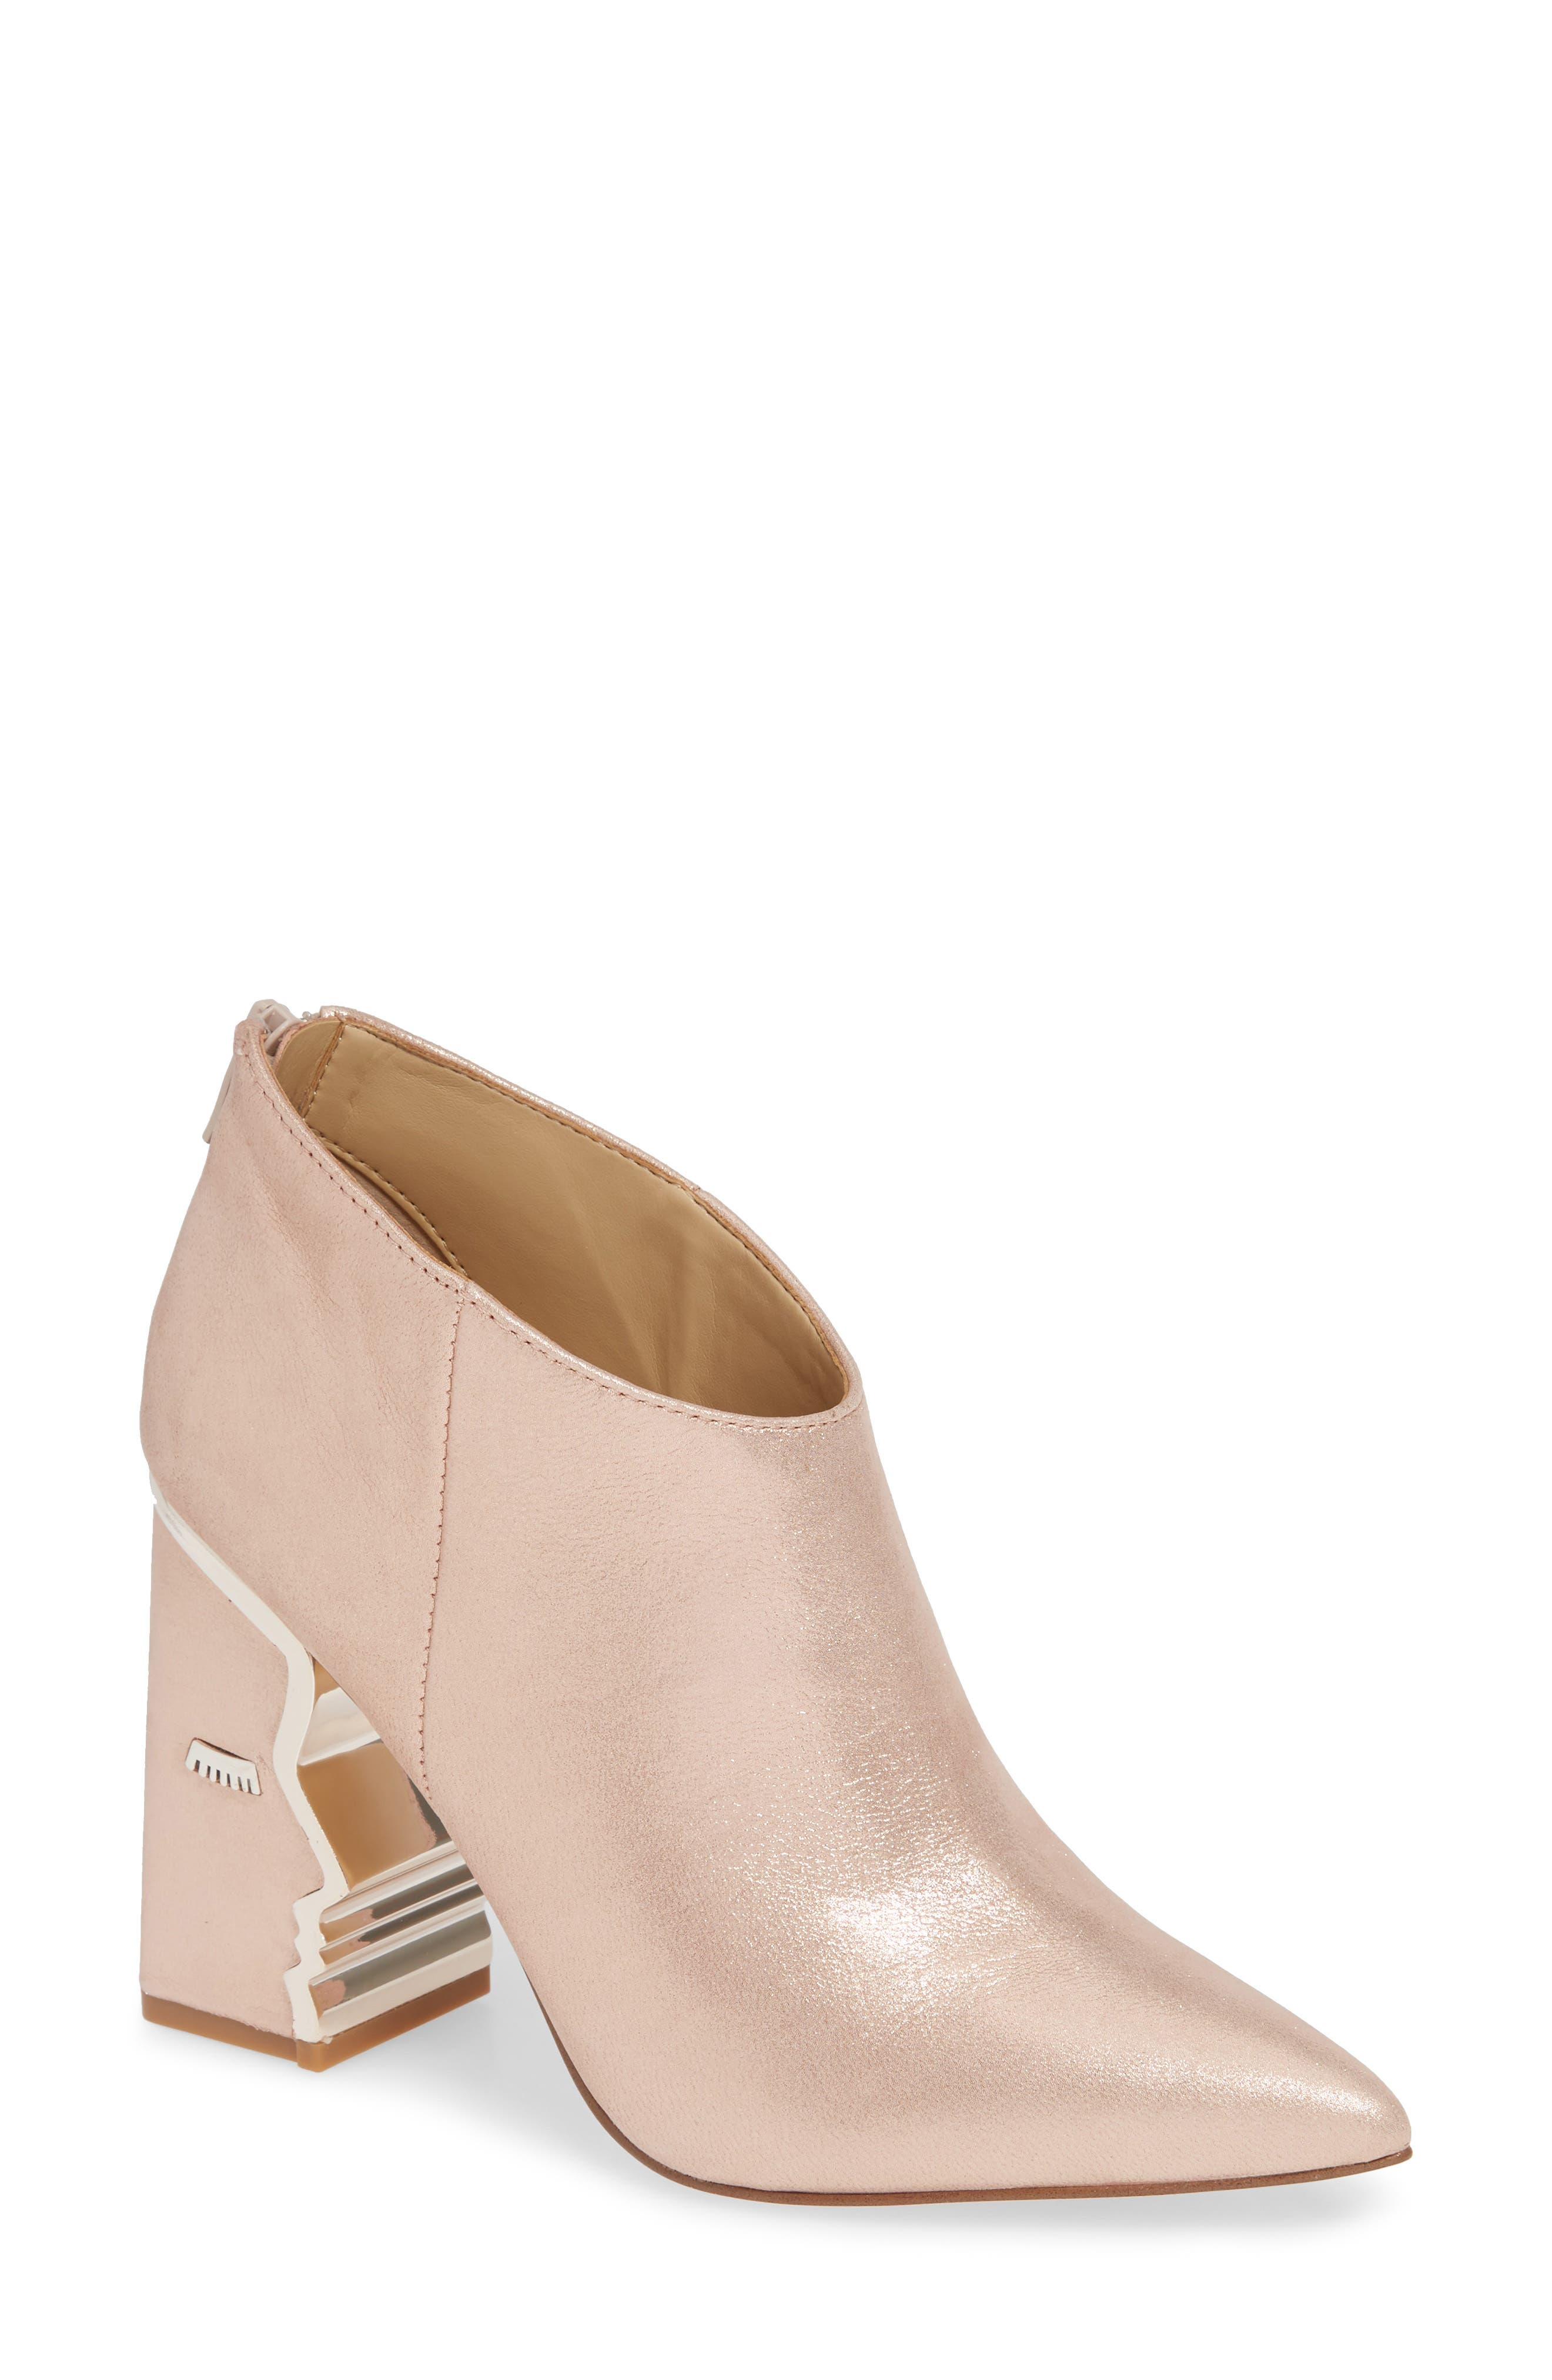 Katy Perry Ankle Bootie- Pink